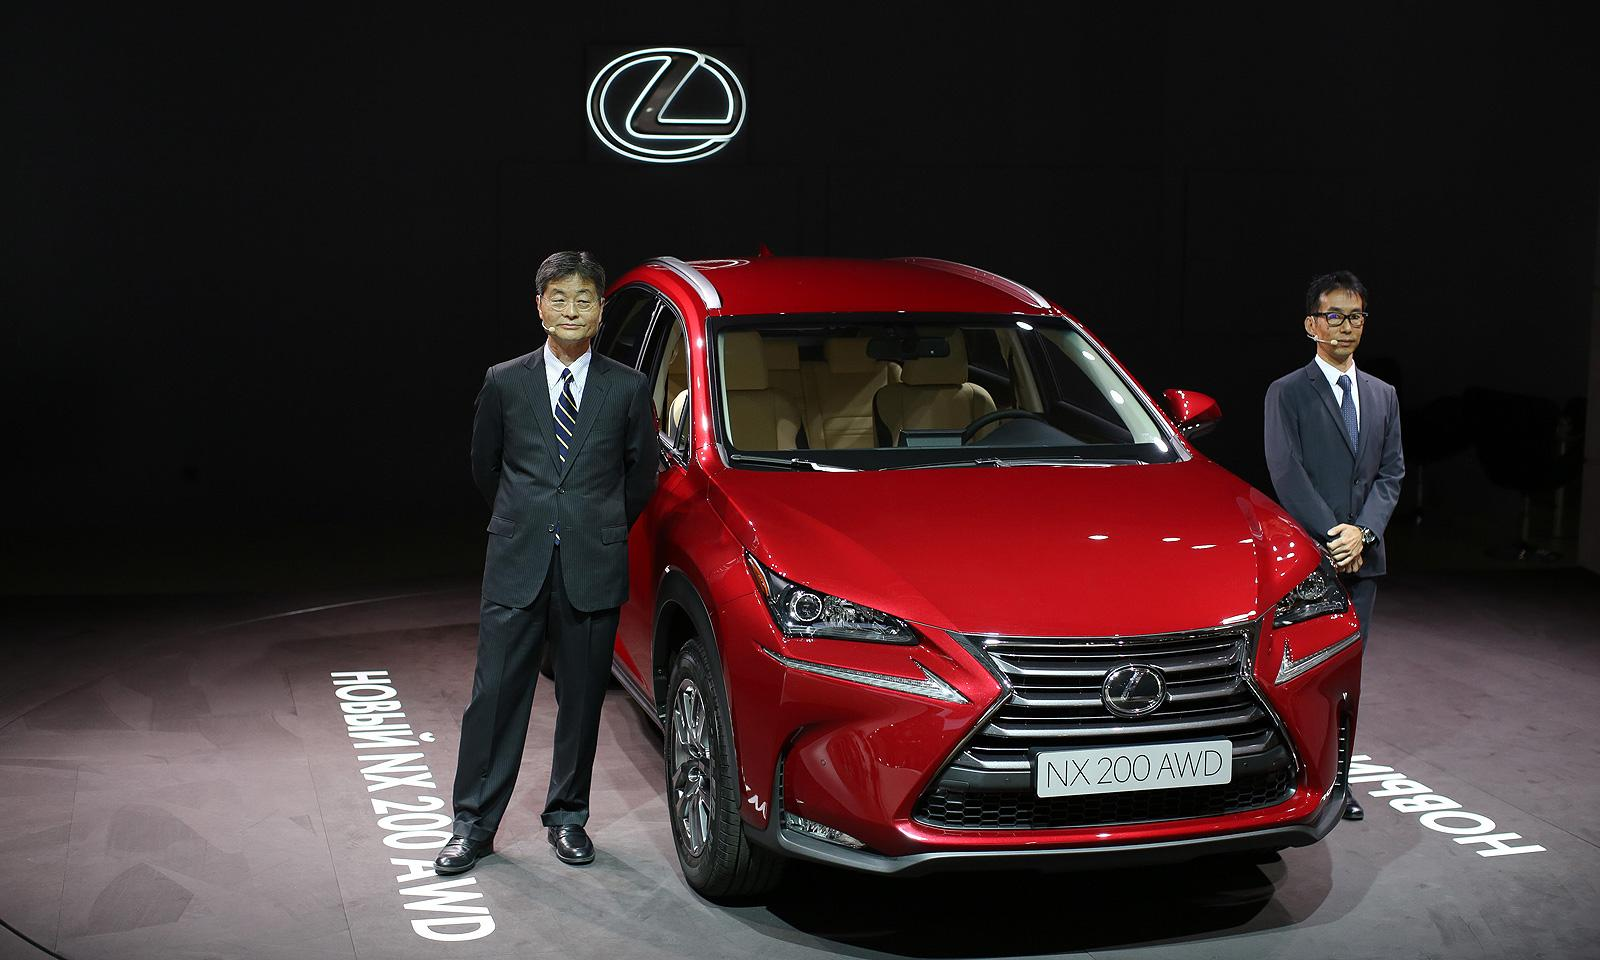 Drawn predator lexus Chief the grille At defends